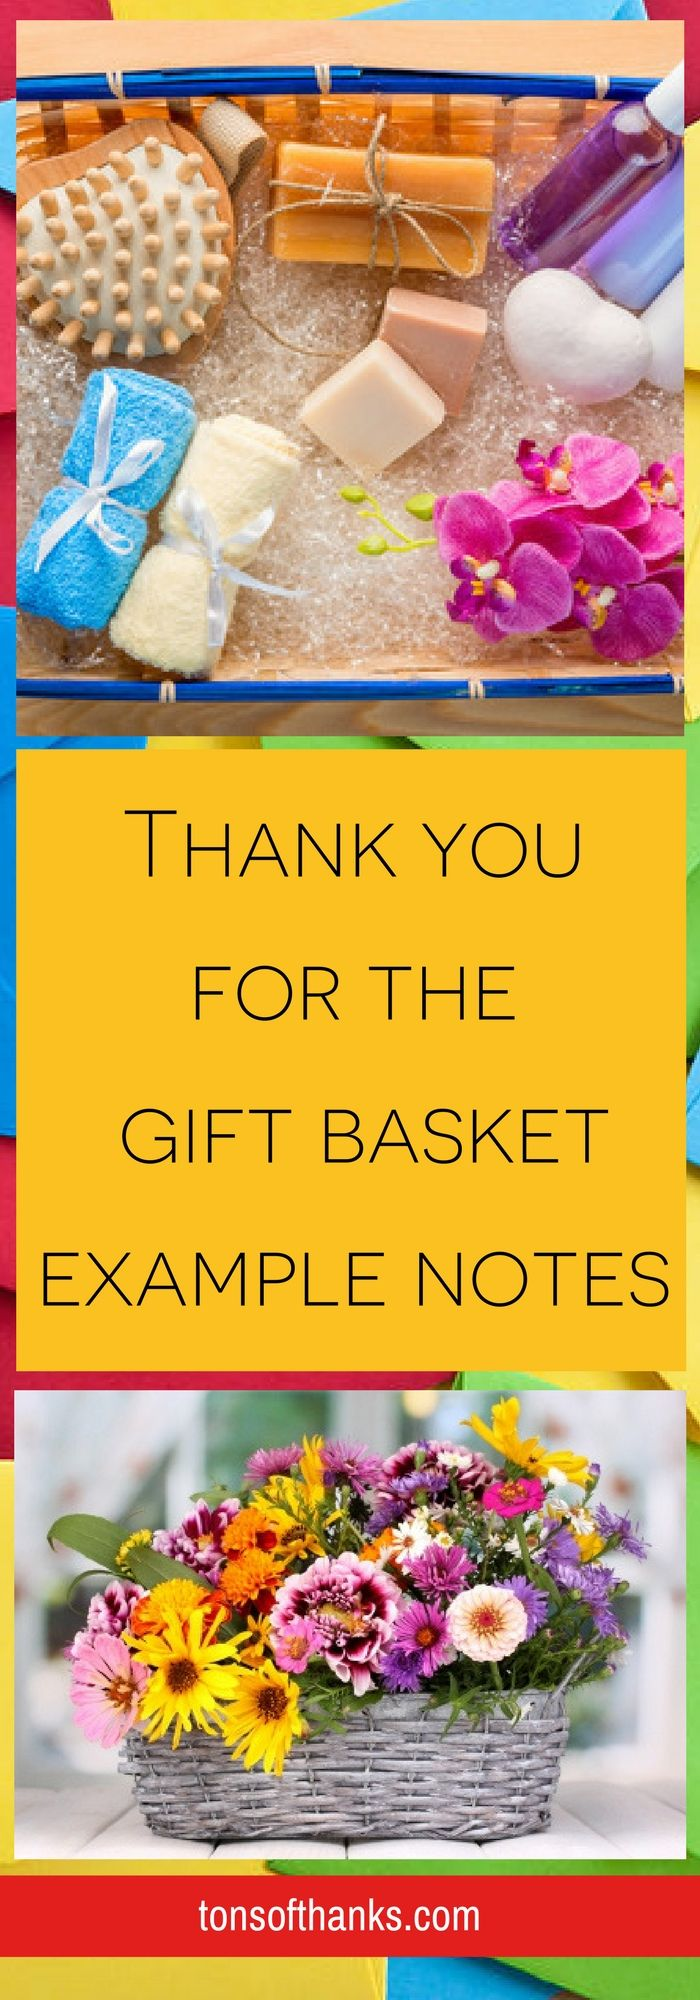 wedding thank you note for gift of money%0A Thank you for the gift basket example notes